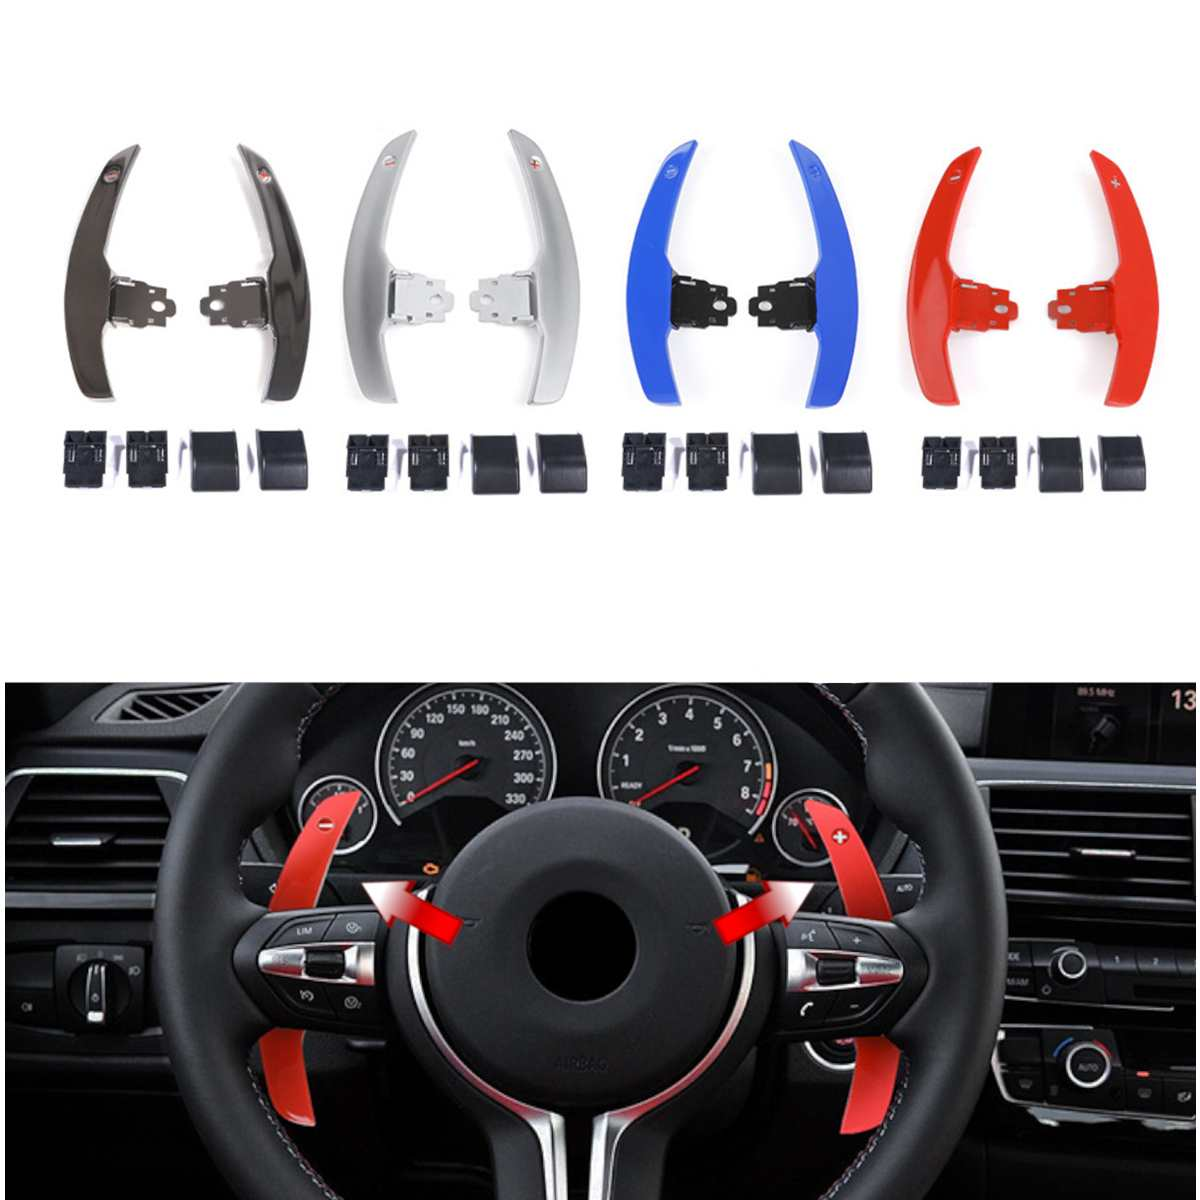 Steering Wheel Paddle Shifter Extension Replacement For BMW F20 F22 F31 F34 F35 F30 F32 F10 F18 F11 F07 F12 F02 F15 F16 F25 F26